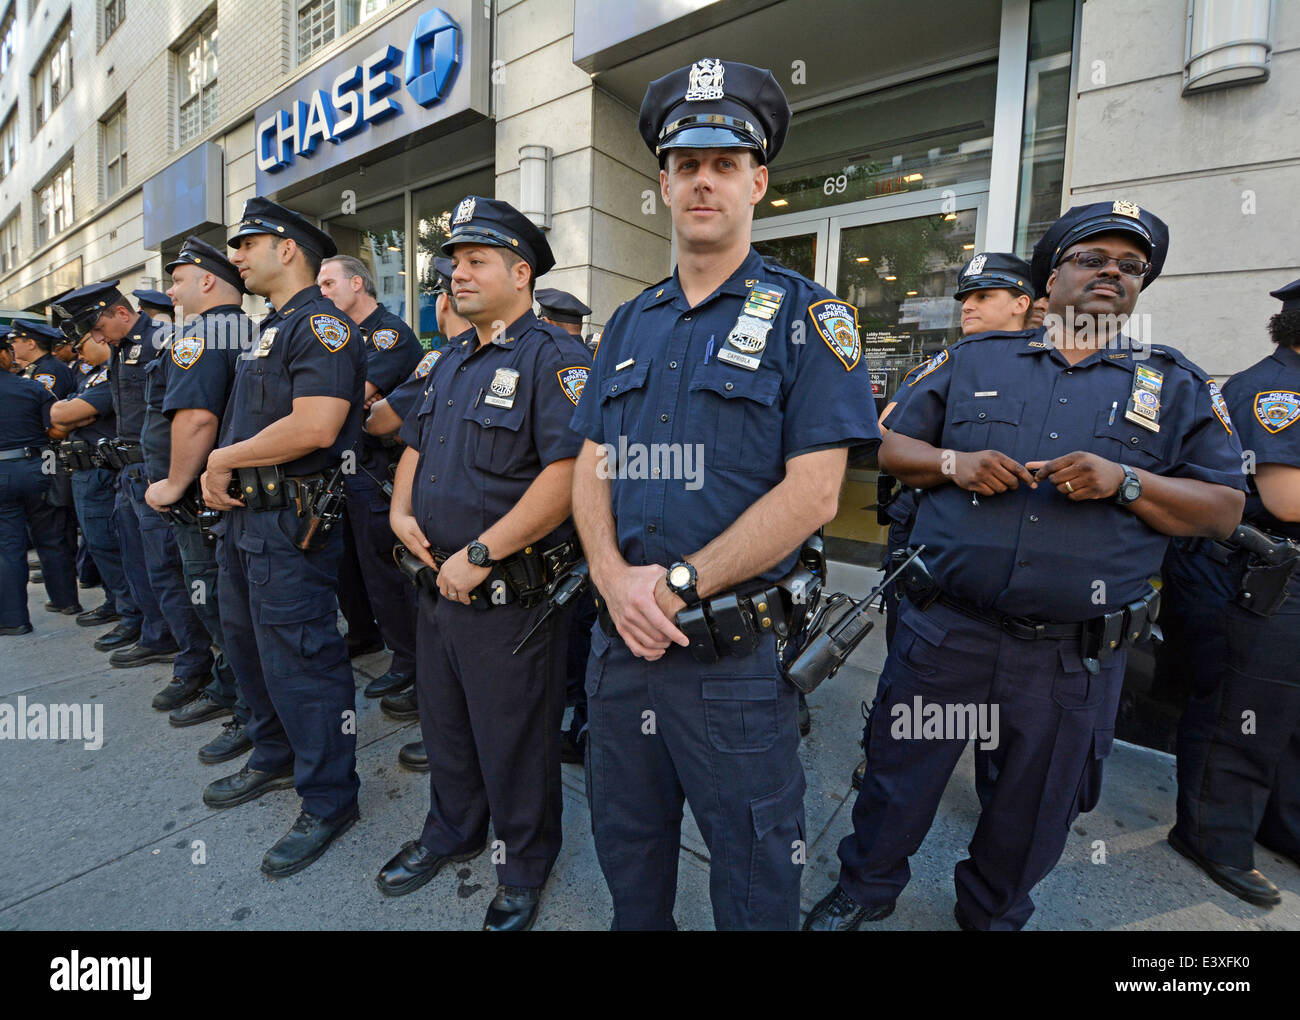 A group of policemen await instruction before the Gay Pride Parade in New York City. - Stock Image